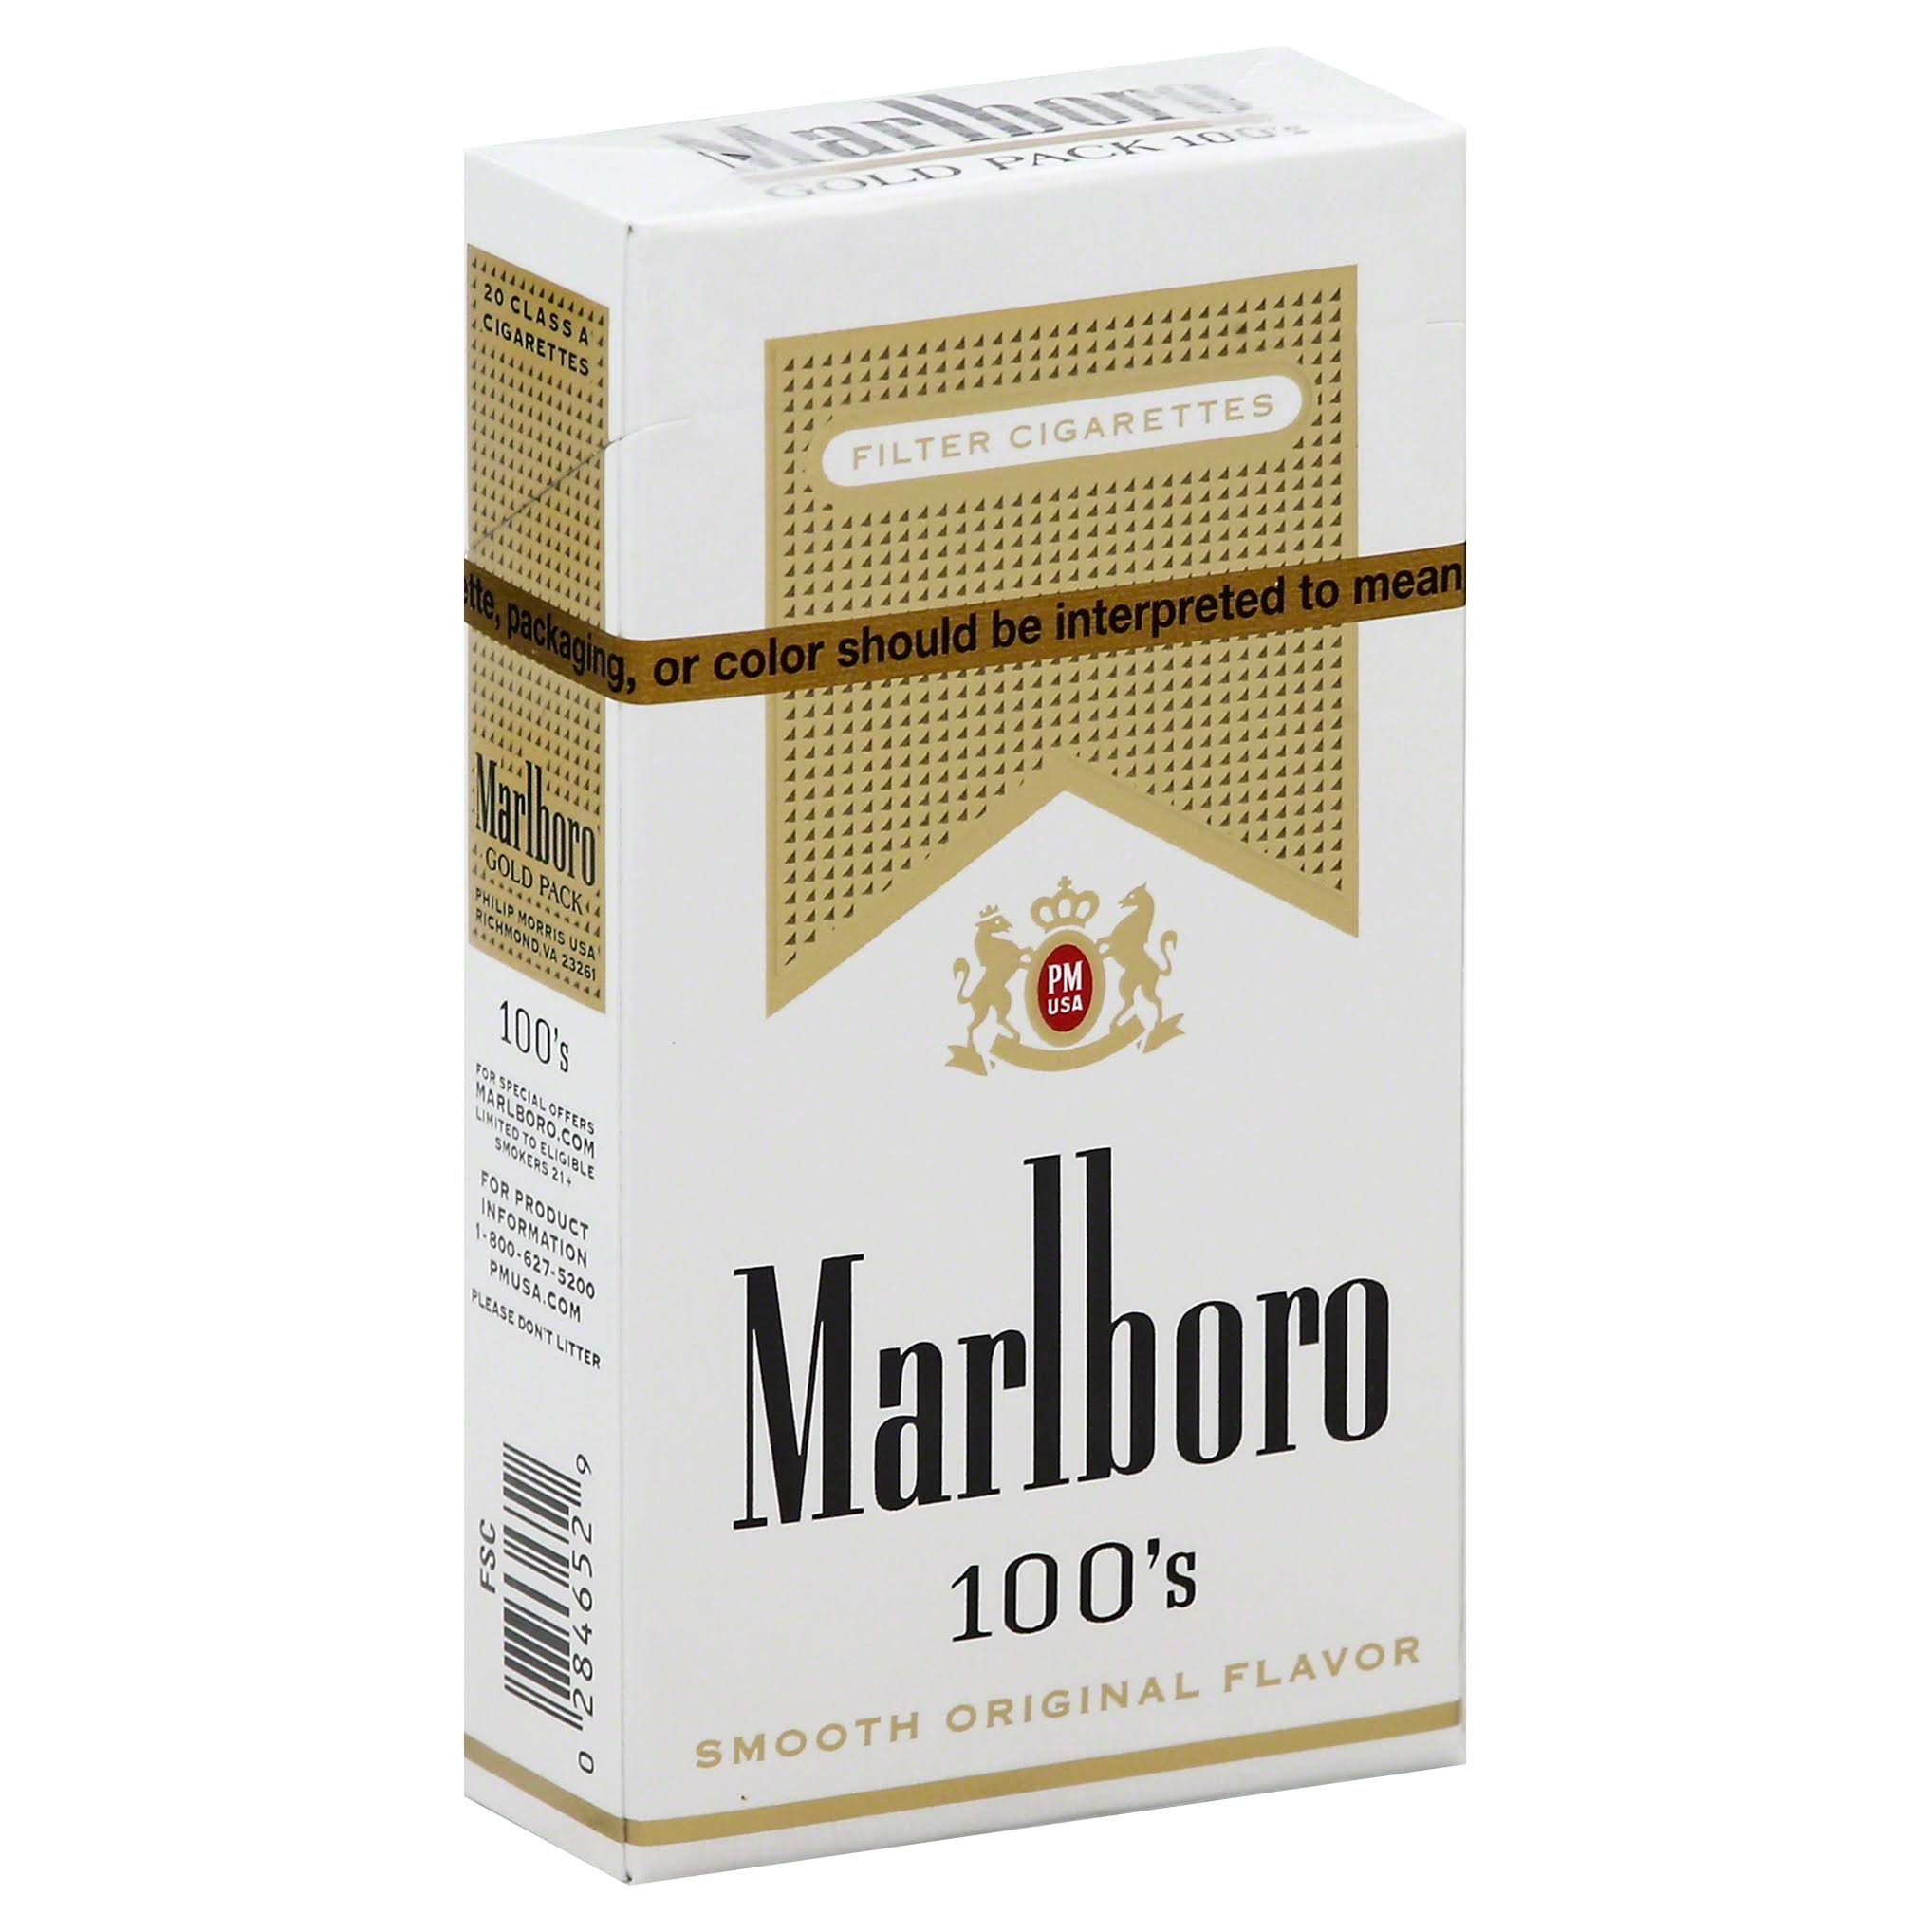 Marlboro Cigarettes, Filter, Gold Pack, 100's, Flip-Top Box - 20 cigarettes